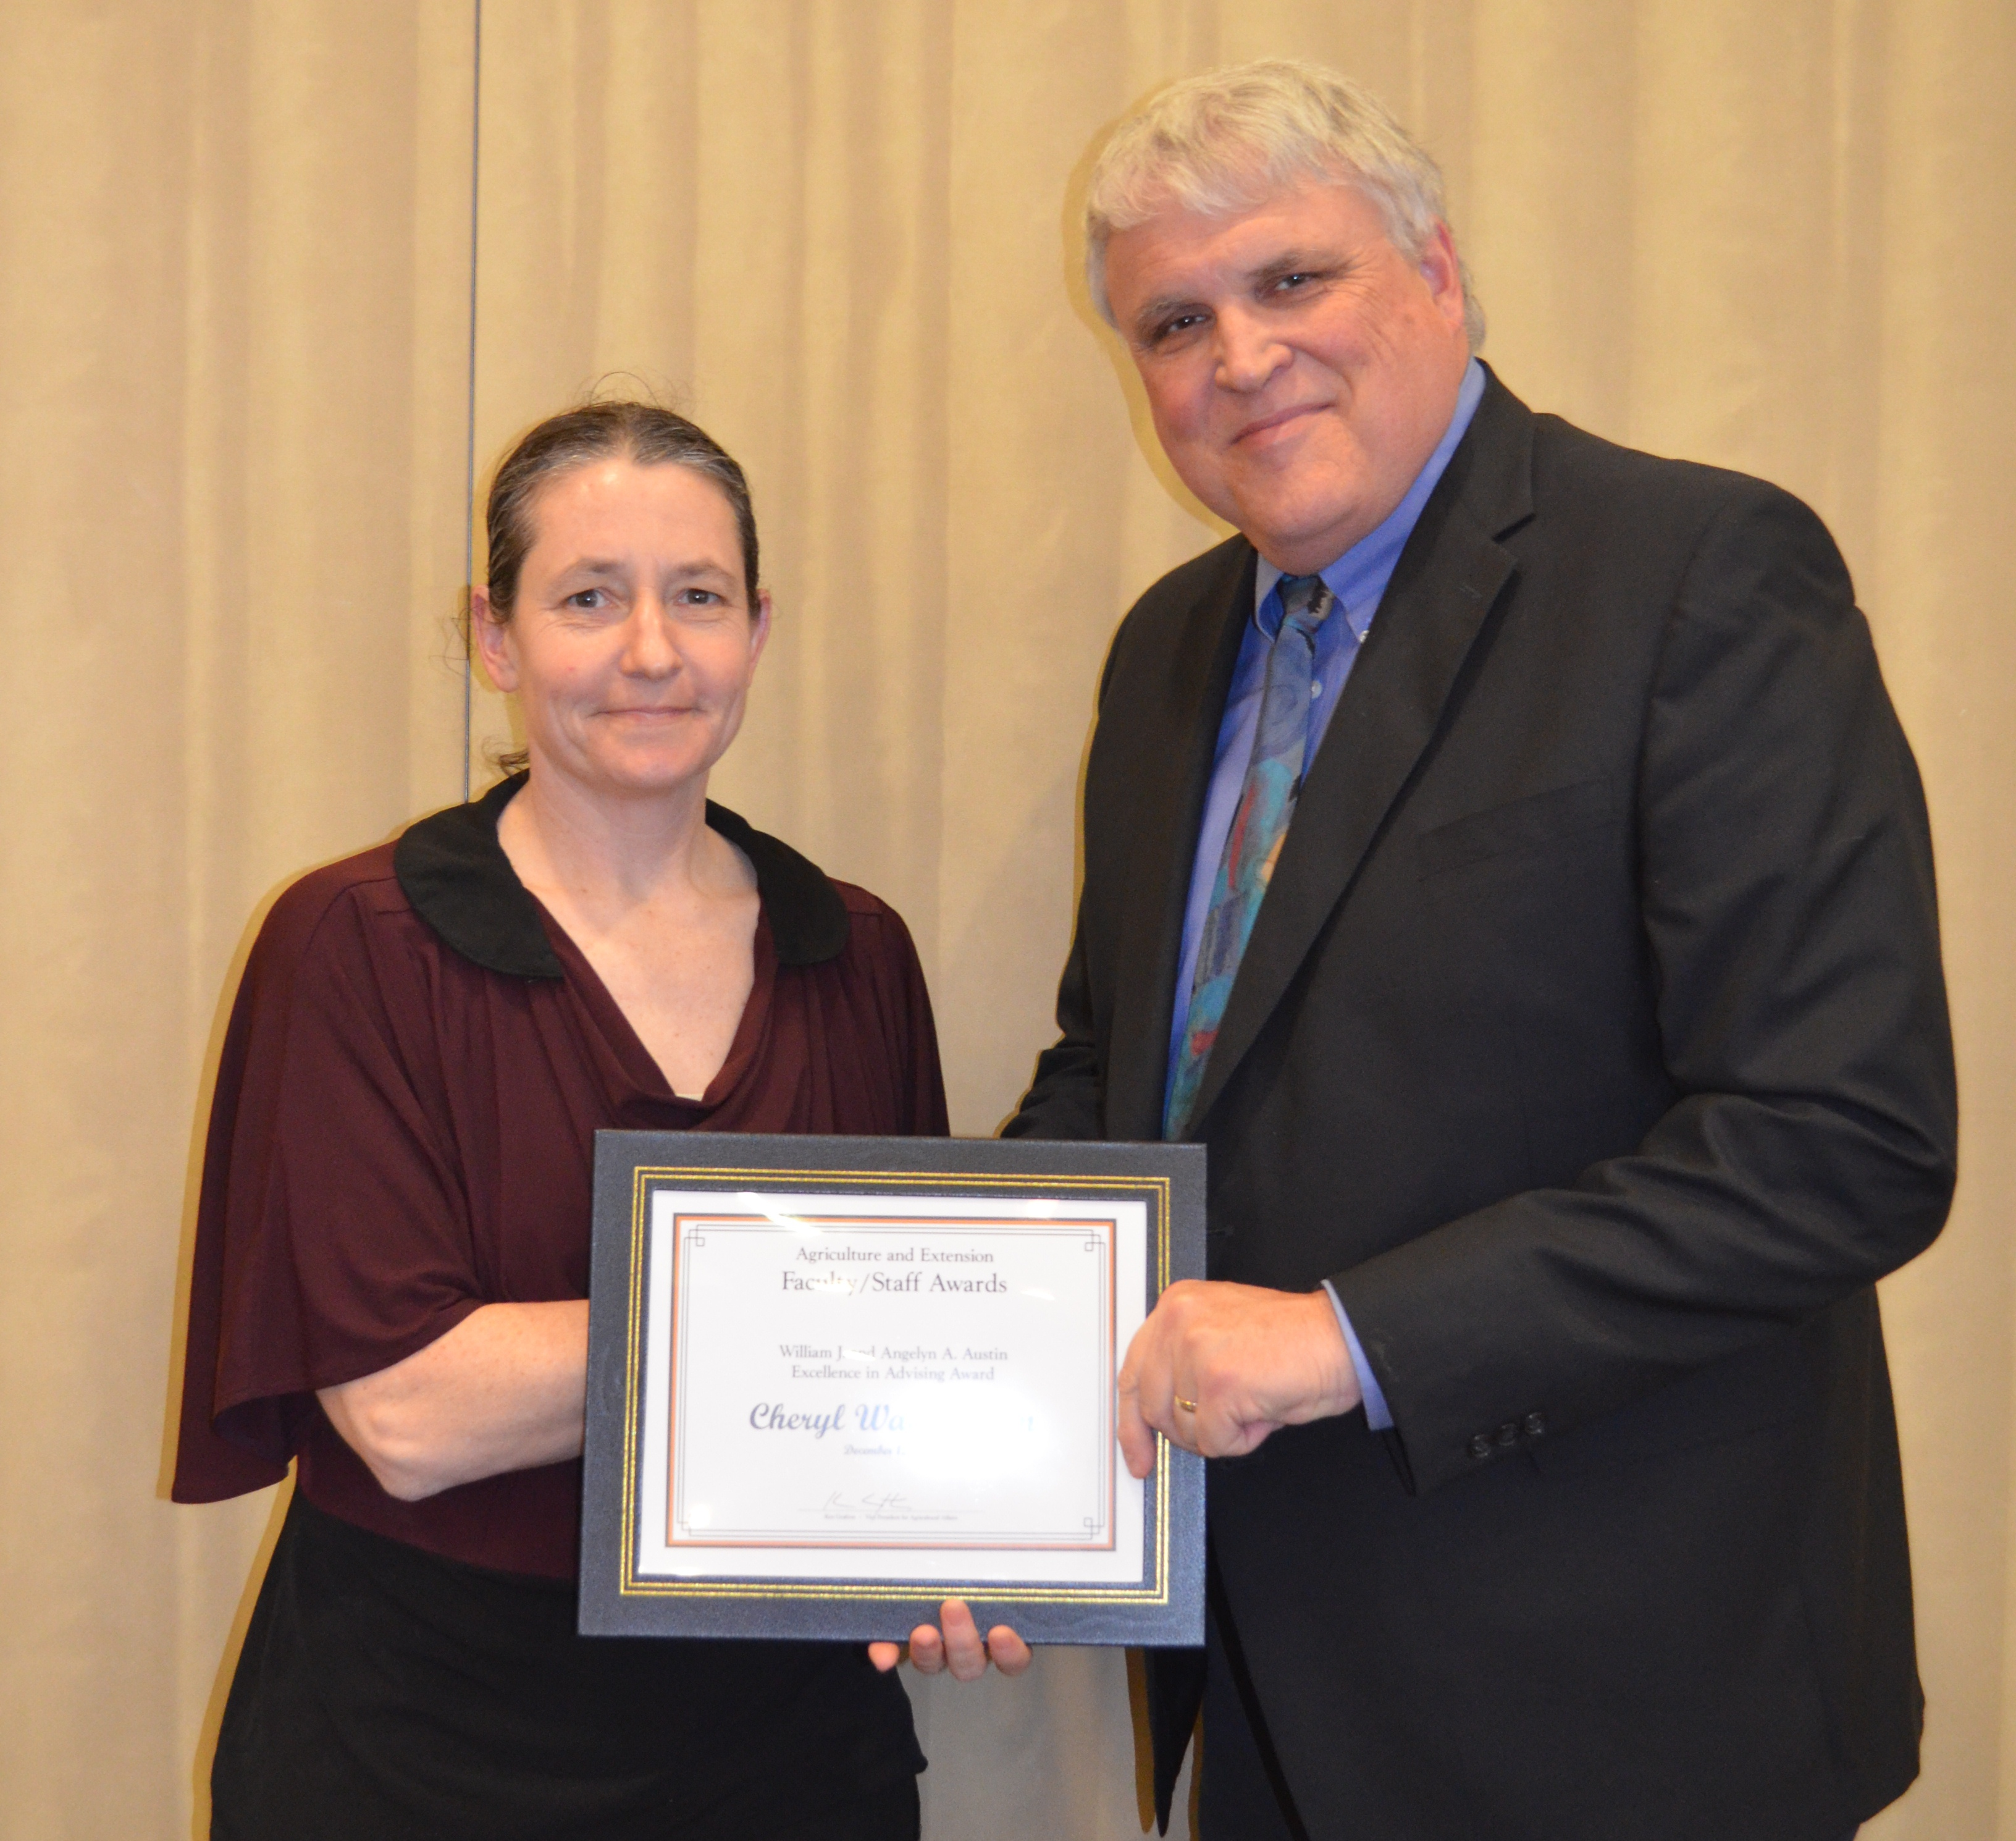 Cheryl Wachenheim, professor, Department of Agribusiness and Applied Economics, receives the William J. and Angelyn A. Austin Excellence in Advising Award from David Buchanan, associate dean for academic programs in the College of Agriculture, Food Systems, and Natural Resources.